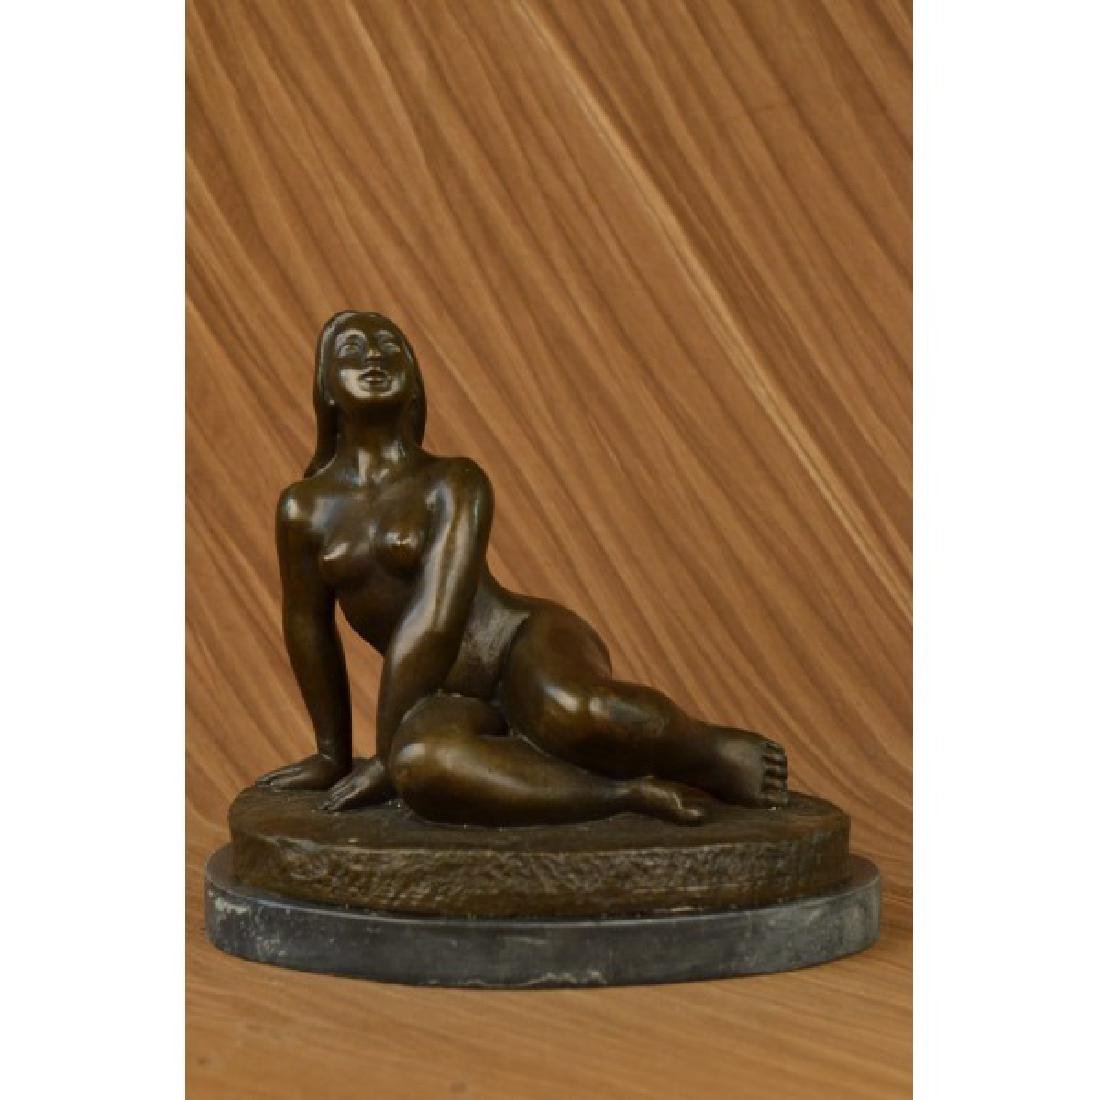 Milo Curvaceous Nude Woman Tribute to Botero Bronze